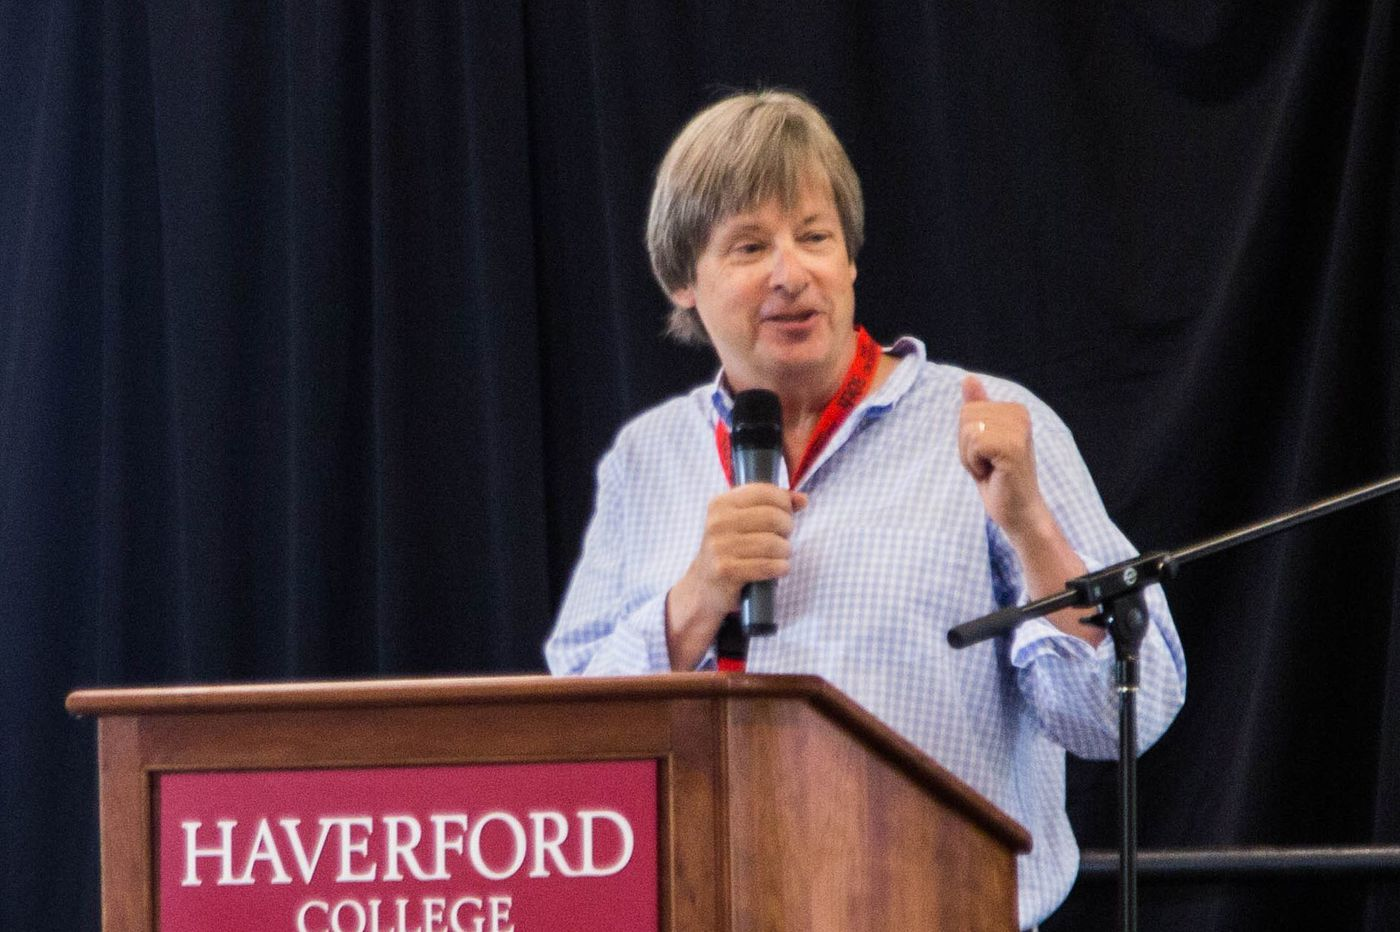 barry dave reunion 50th haverford college columnist laugh humor funnyman prepare hear say had delights fellow alumni weekend last